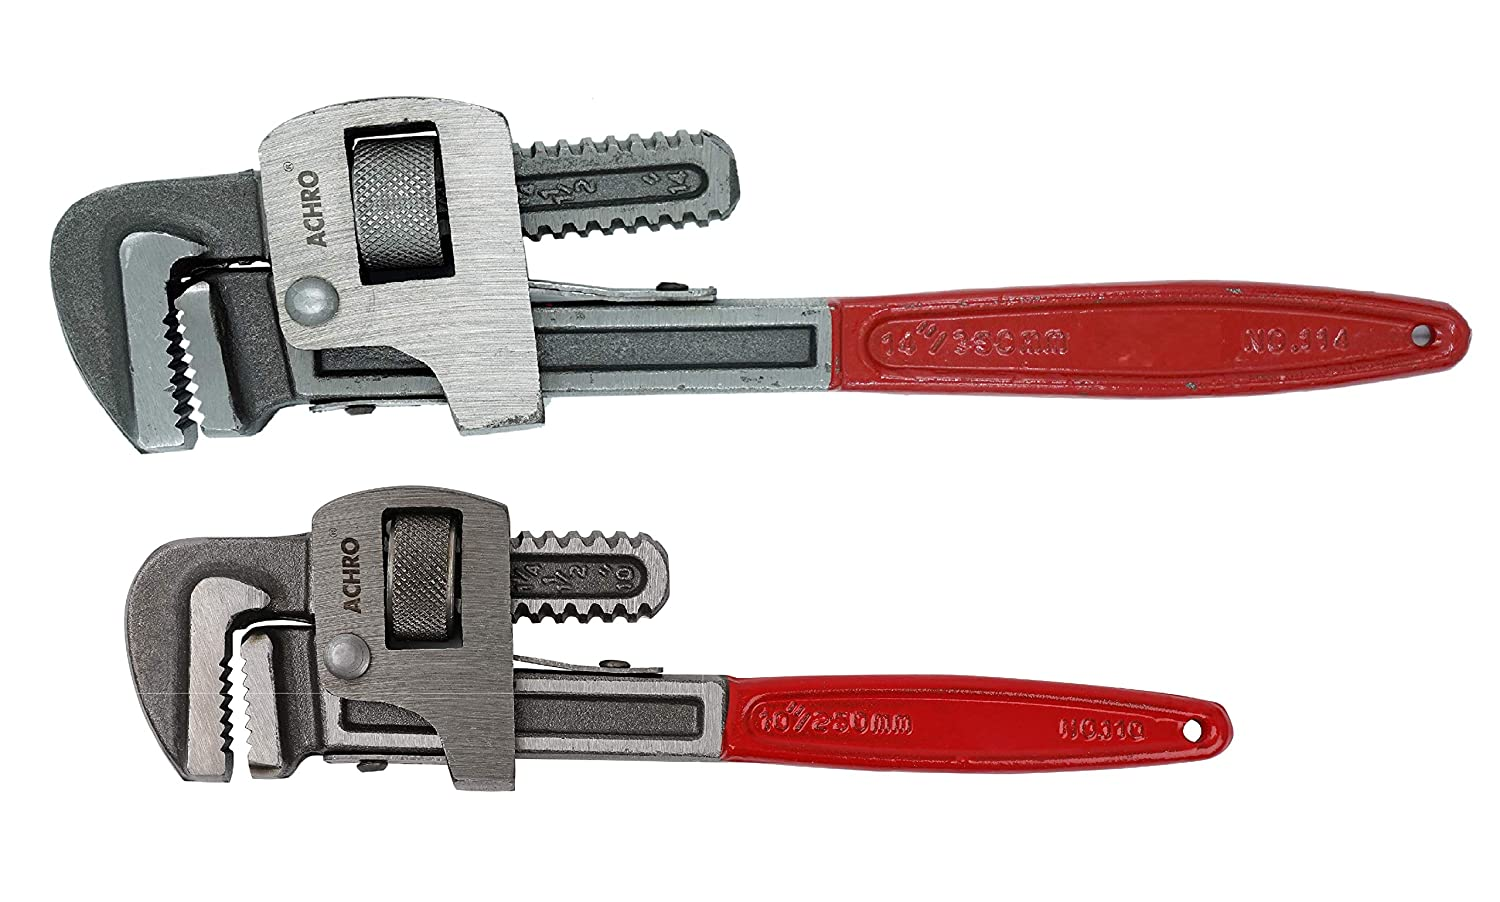 ACHRO Pipe Wrench Set (Pack of 2) - 14 Inch Pipe Wrench and 10 Inch Pipe  Wrench: Amazon.in: Industrial & Scientific